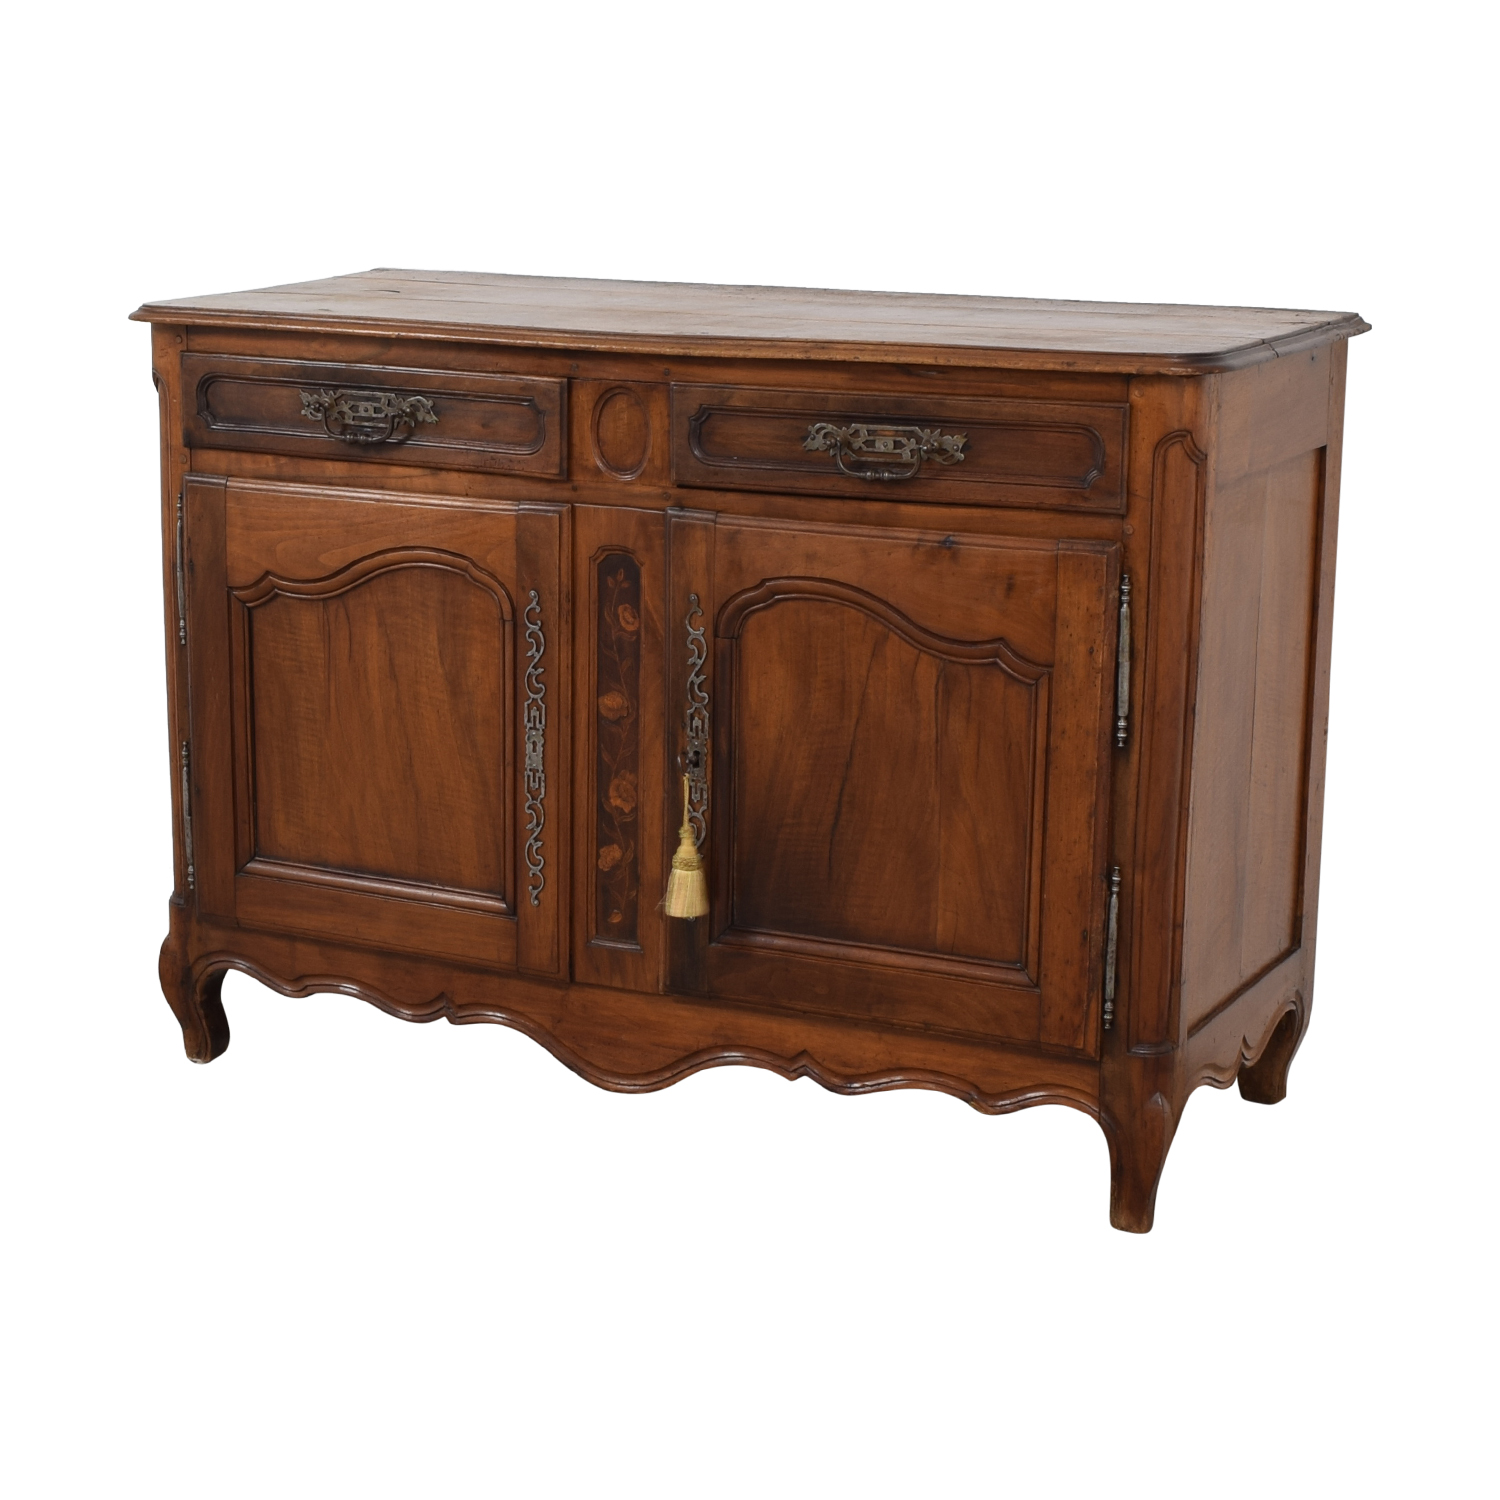 90 Off Antique French Country Walnut Dovetailed Buffet Storage